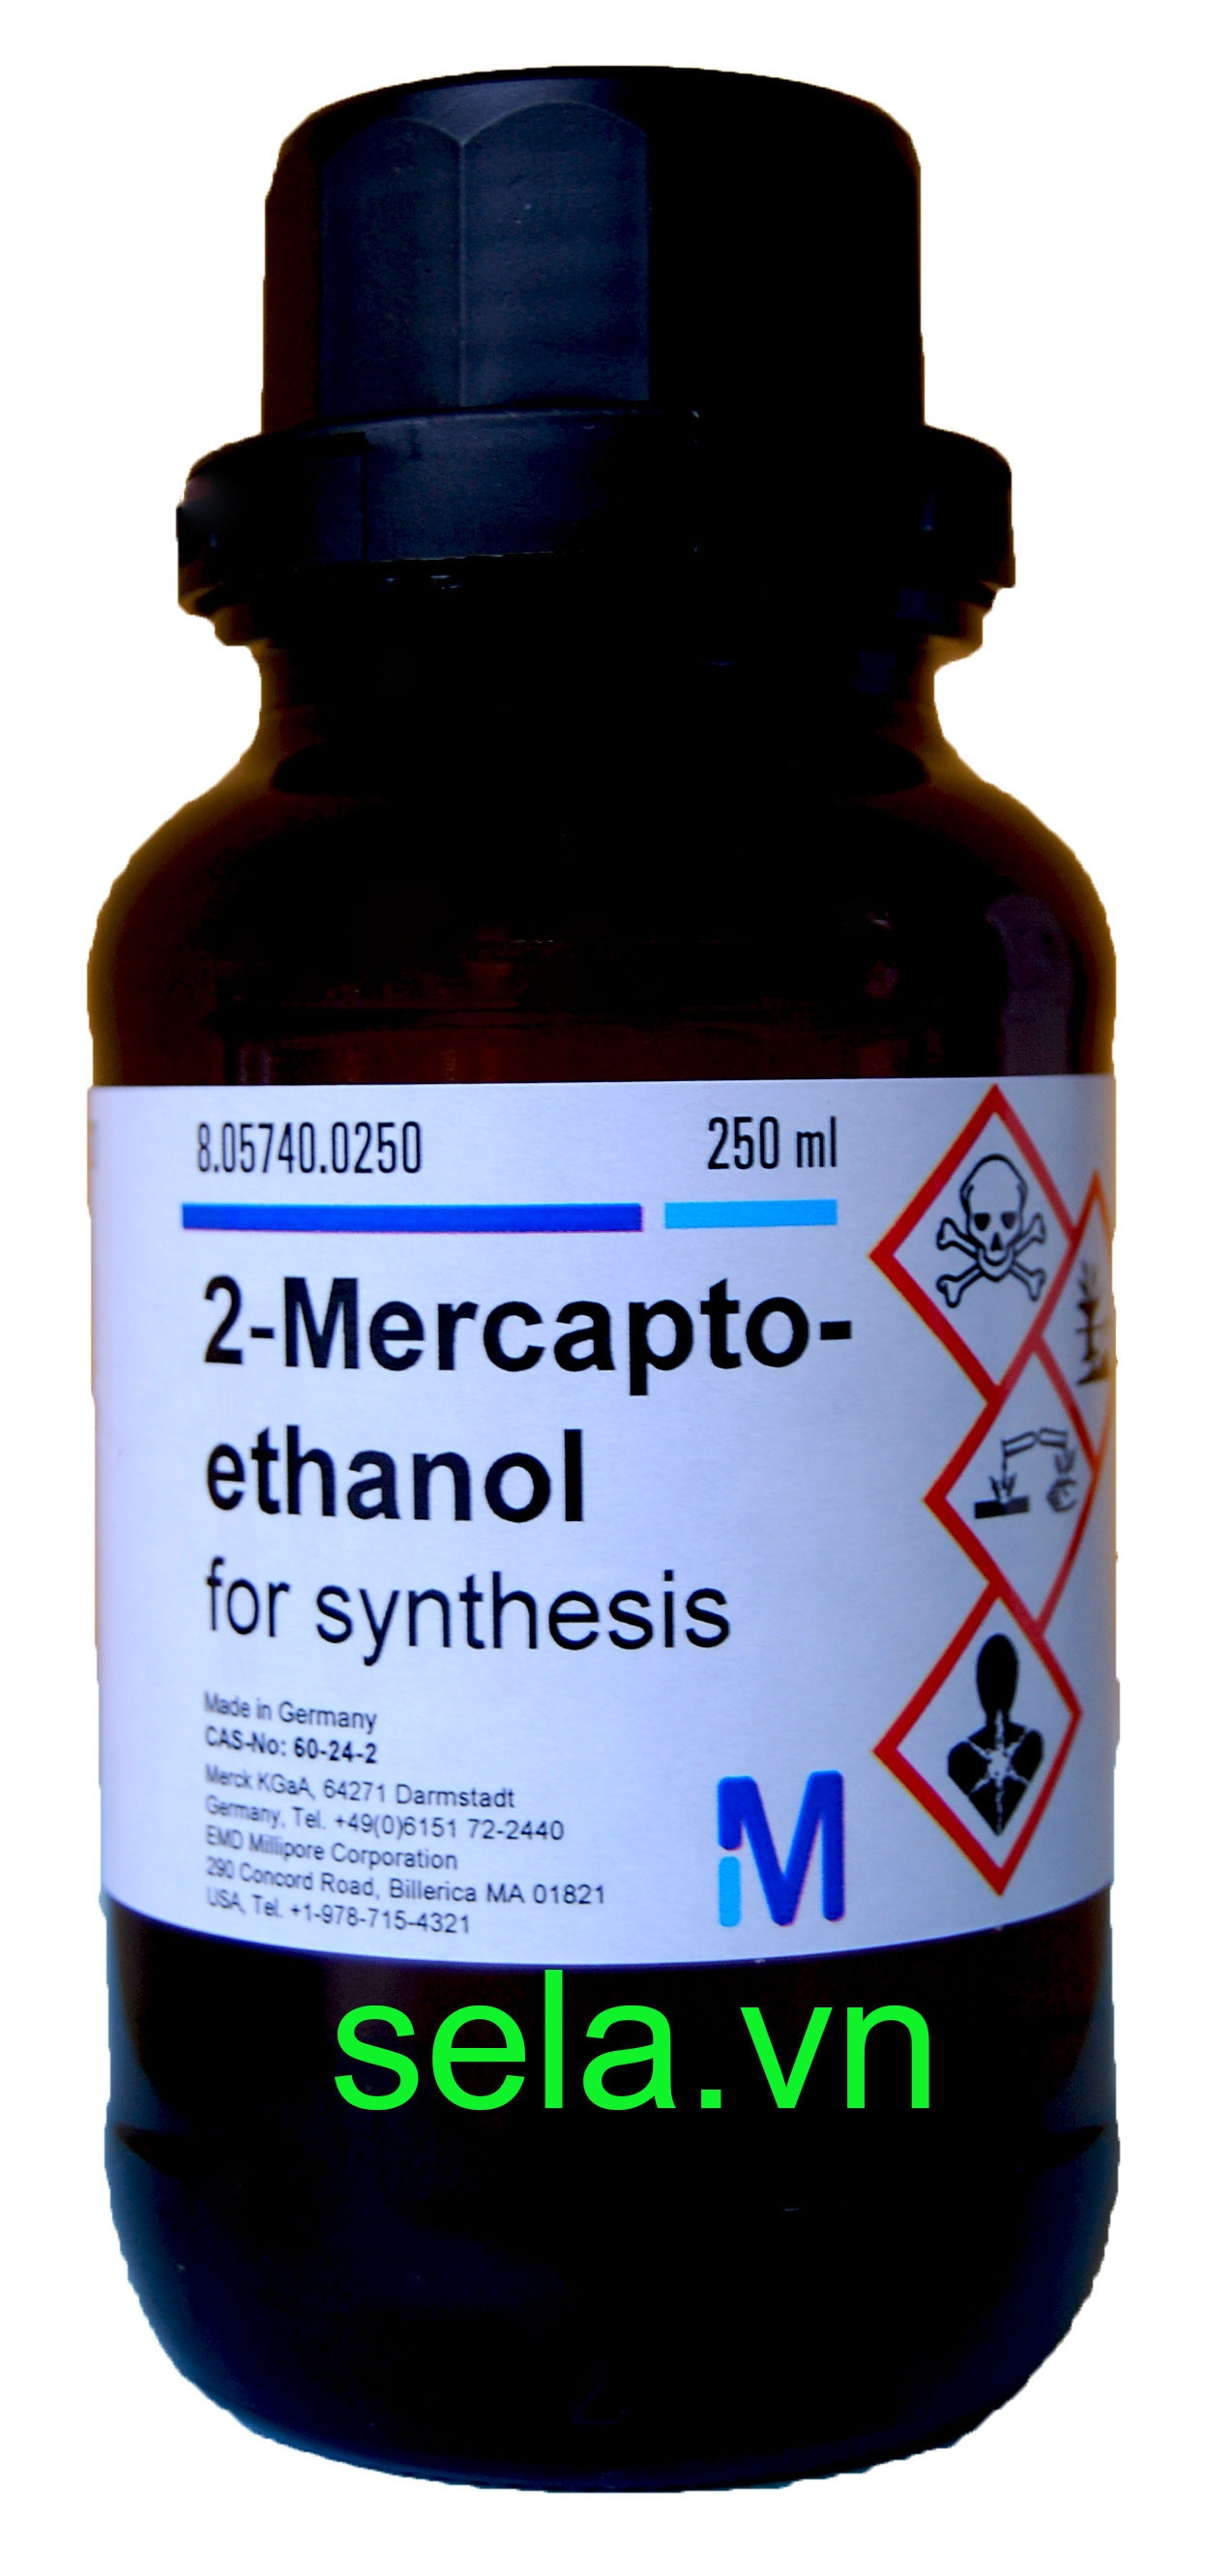 2-Mercaptoethanol for synthesis